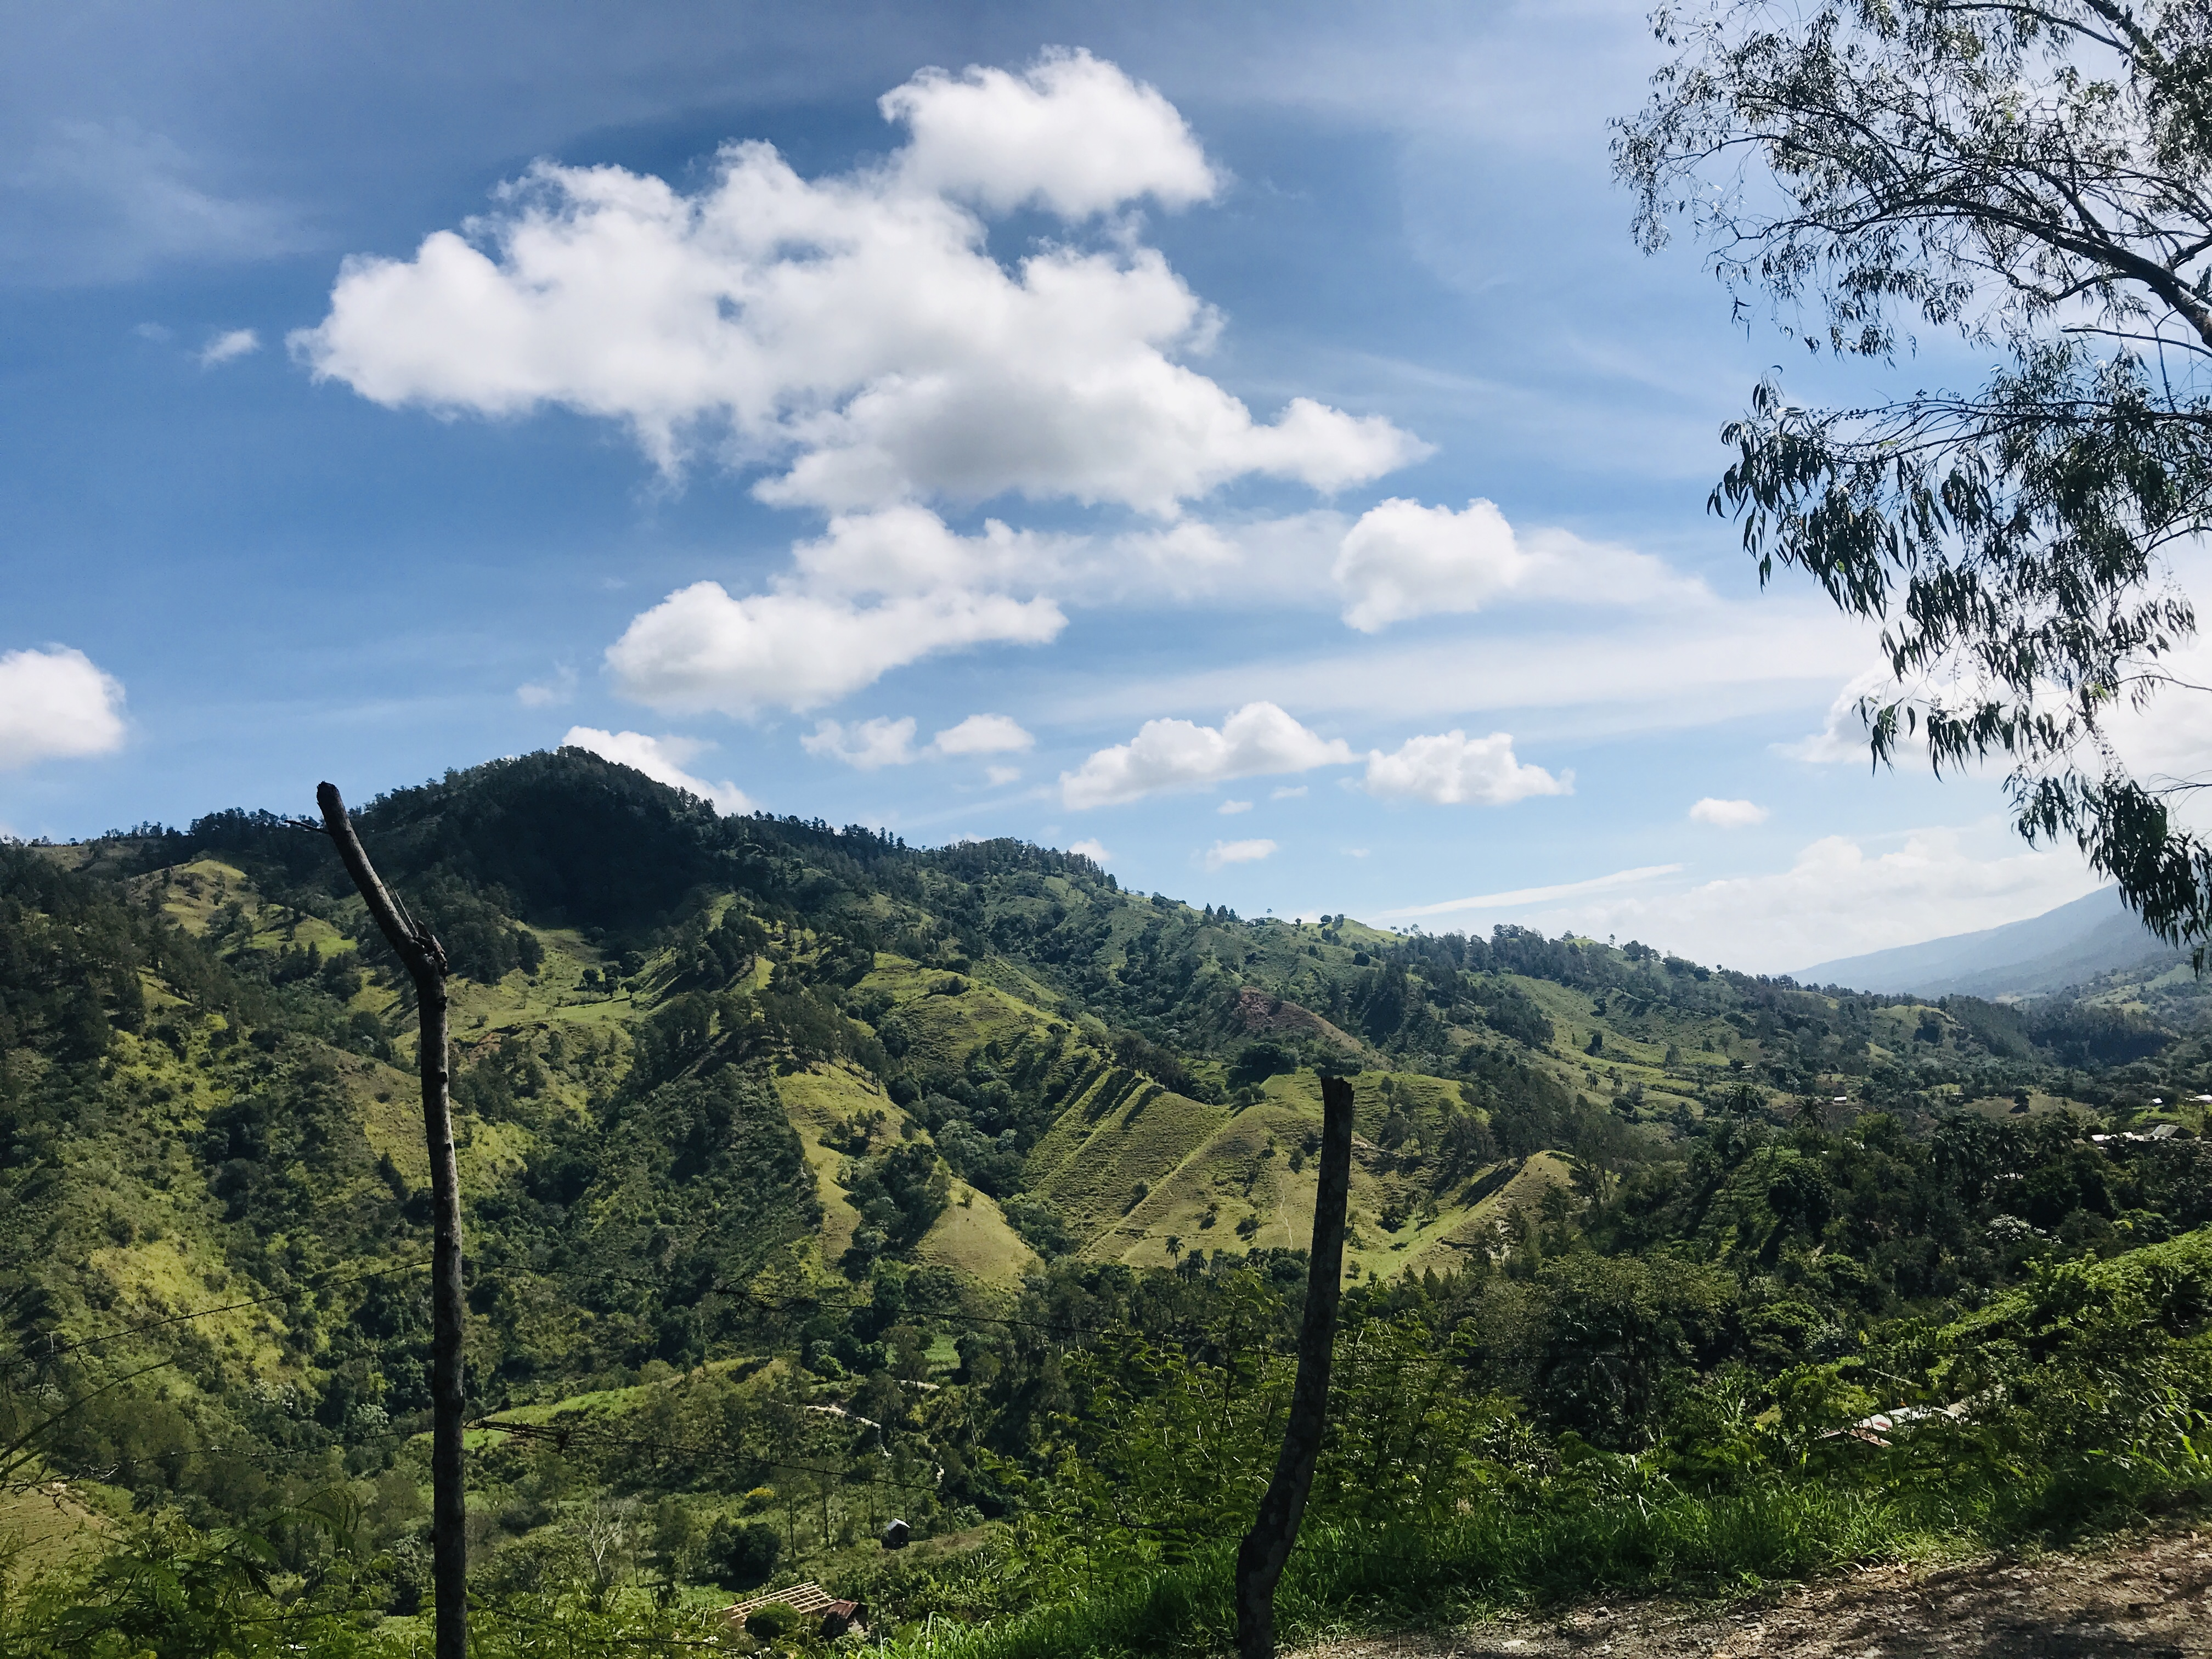 While the Dominican Republic is known for its beaches, it also boasts vast mountain ranges and fertile green valleys. Pico Duarte, at 3,098 meters (10,164 feet), is the highest peak in the Caribbean.